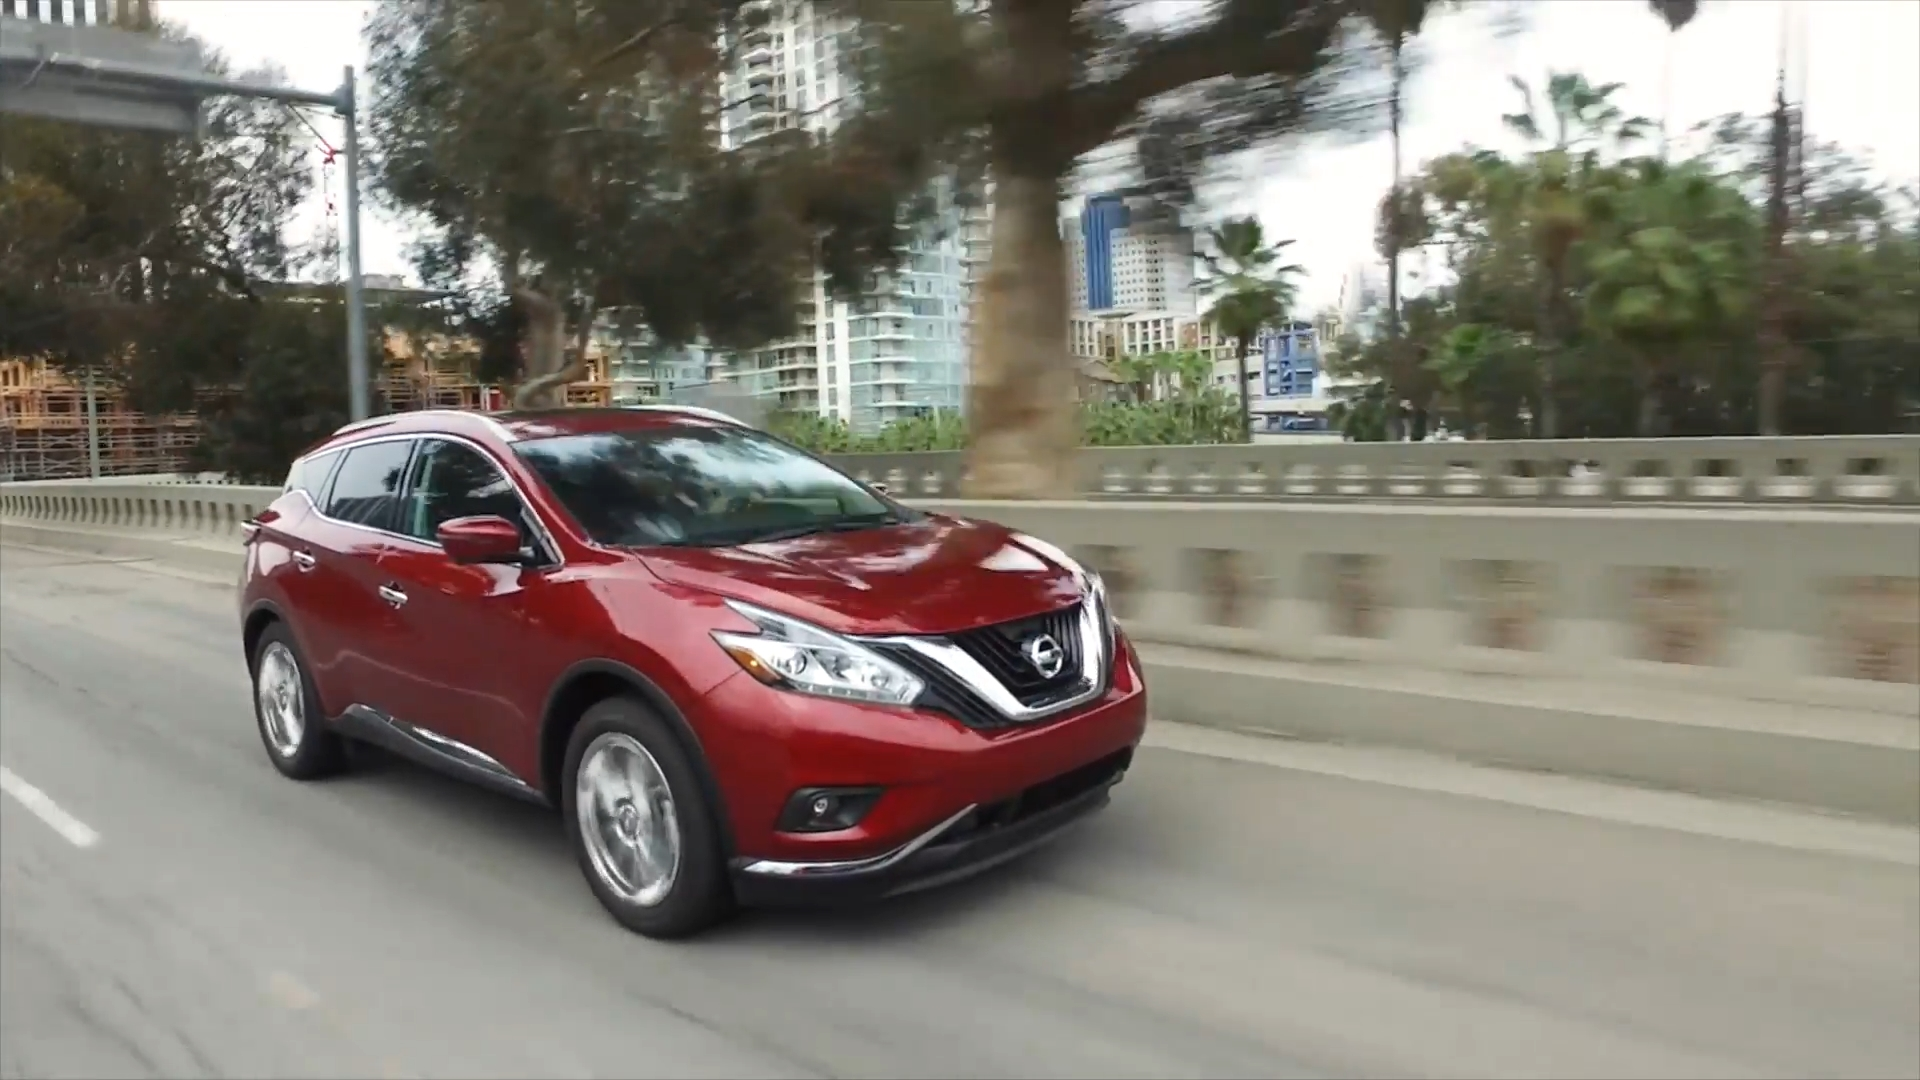 2018 Nissan Murano Driving Video